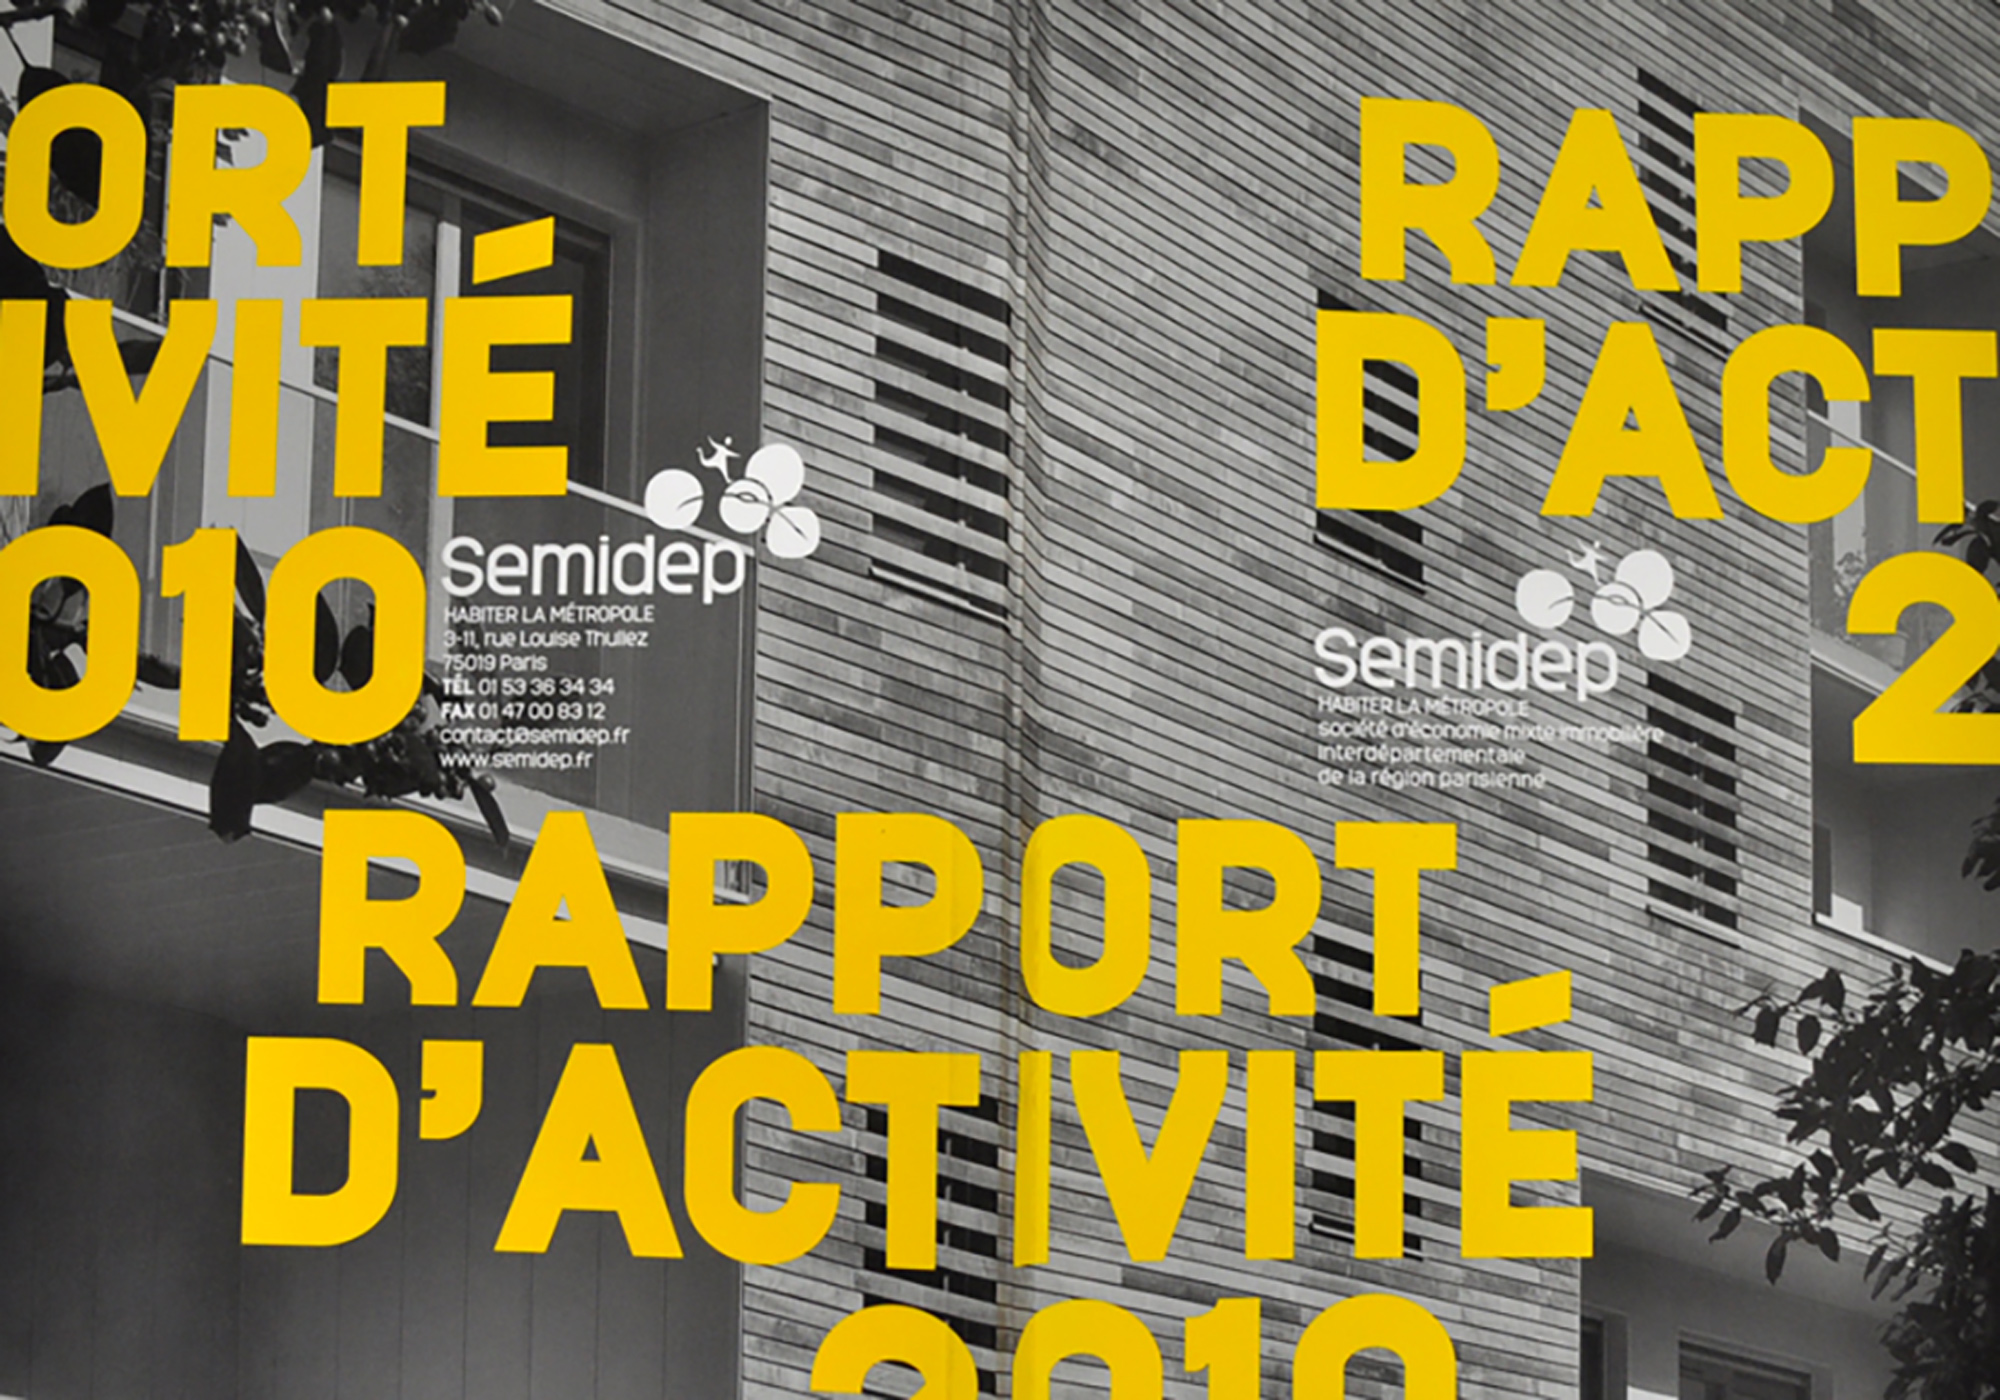 narrative rapport activite semidep